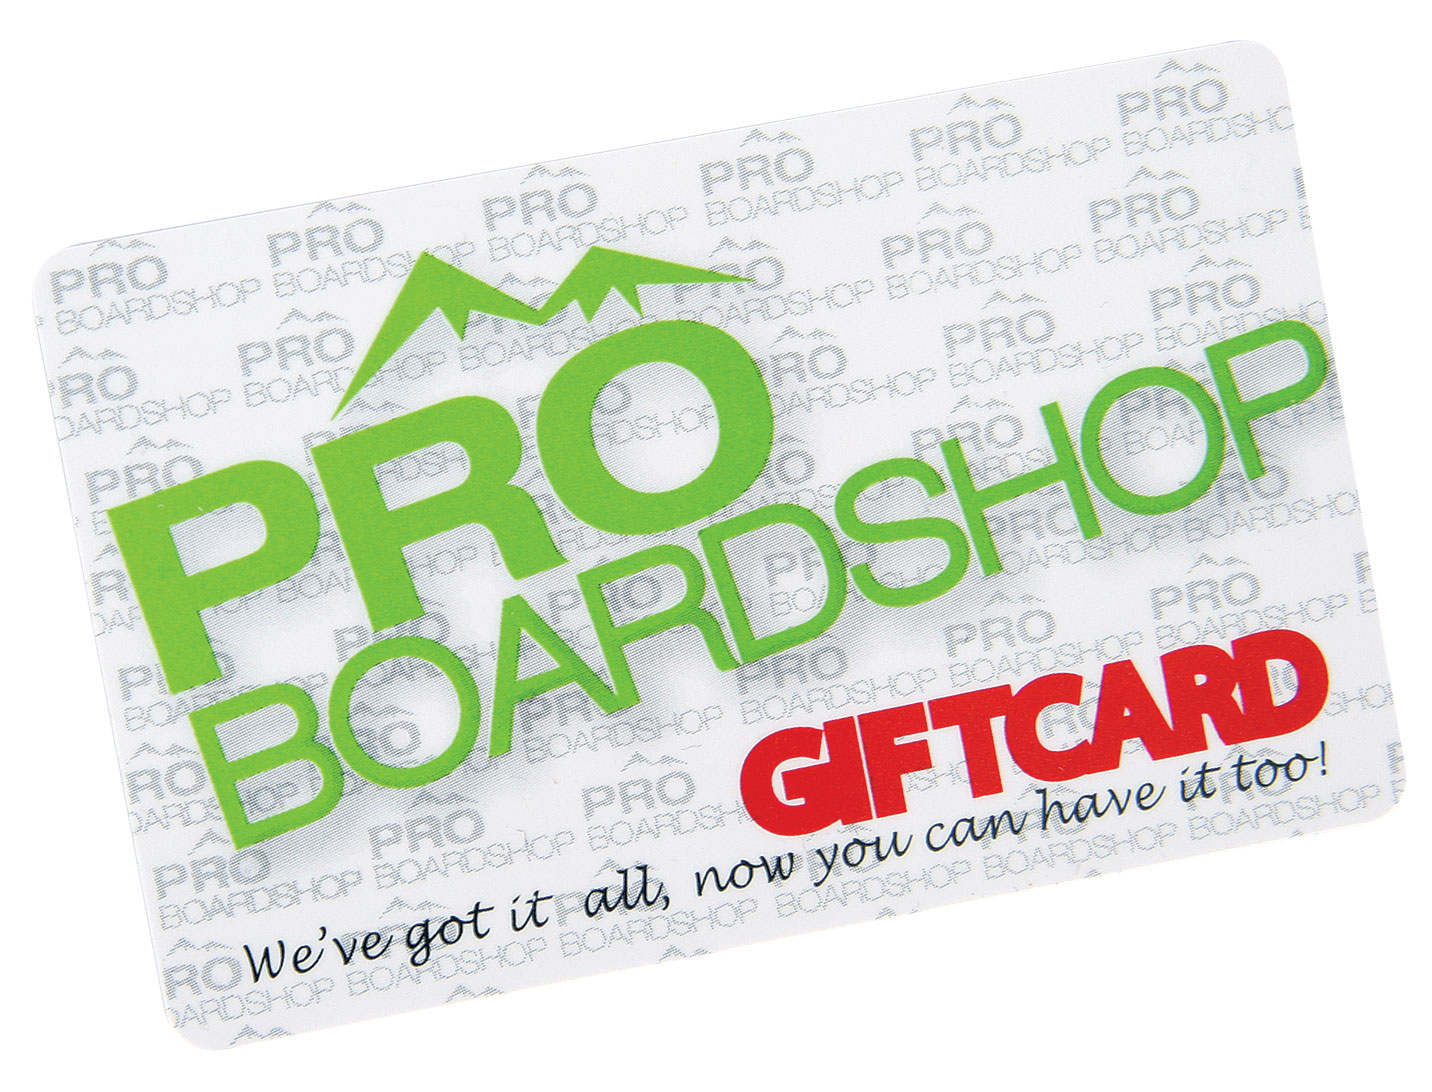 Let them choose! Whether you're having trouble picking the right gift, or you just want to make sure they get the perfect gear, a Proboardshop gift card is sure to please. No more worries about the right color, size, or current style. You'll get 5 stars for gift giving, and they'll get exactly what they want. Note:Currently, Proboardshop gift cards are only redeemable through phone sale. The lucky receiver should call 1-888-557-0551 to place their order and redeem their gift card. - $250.00